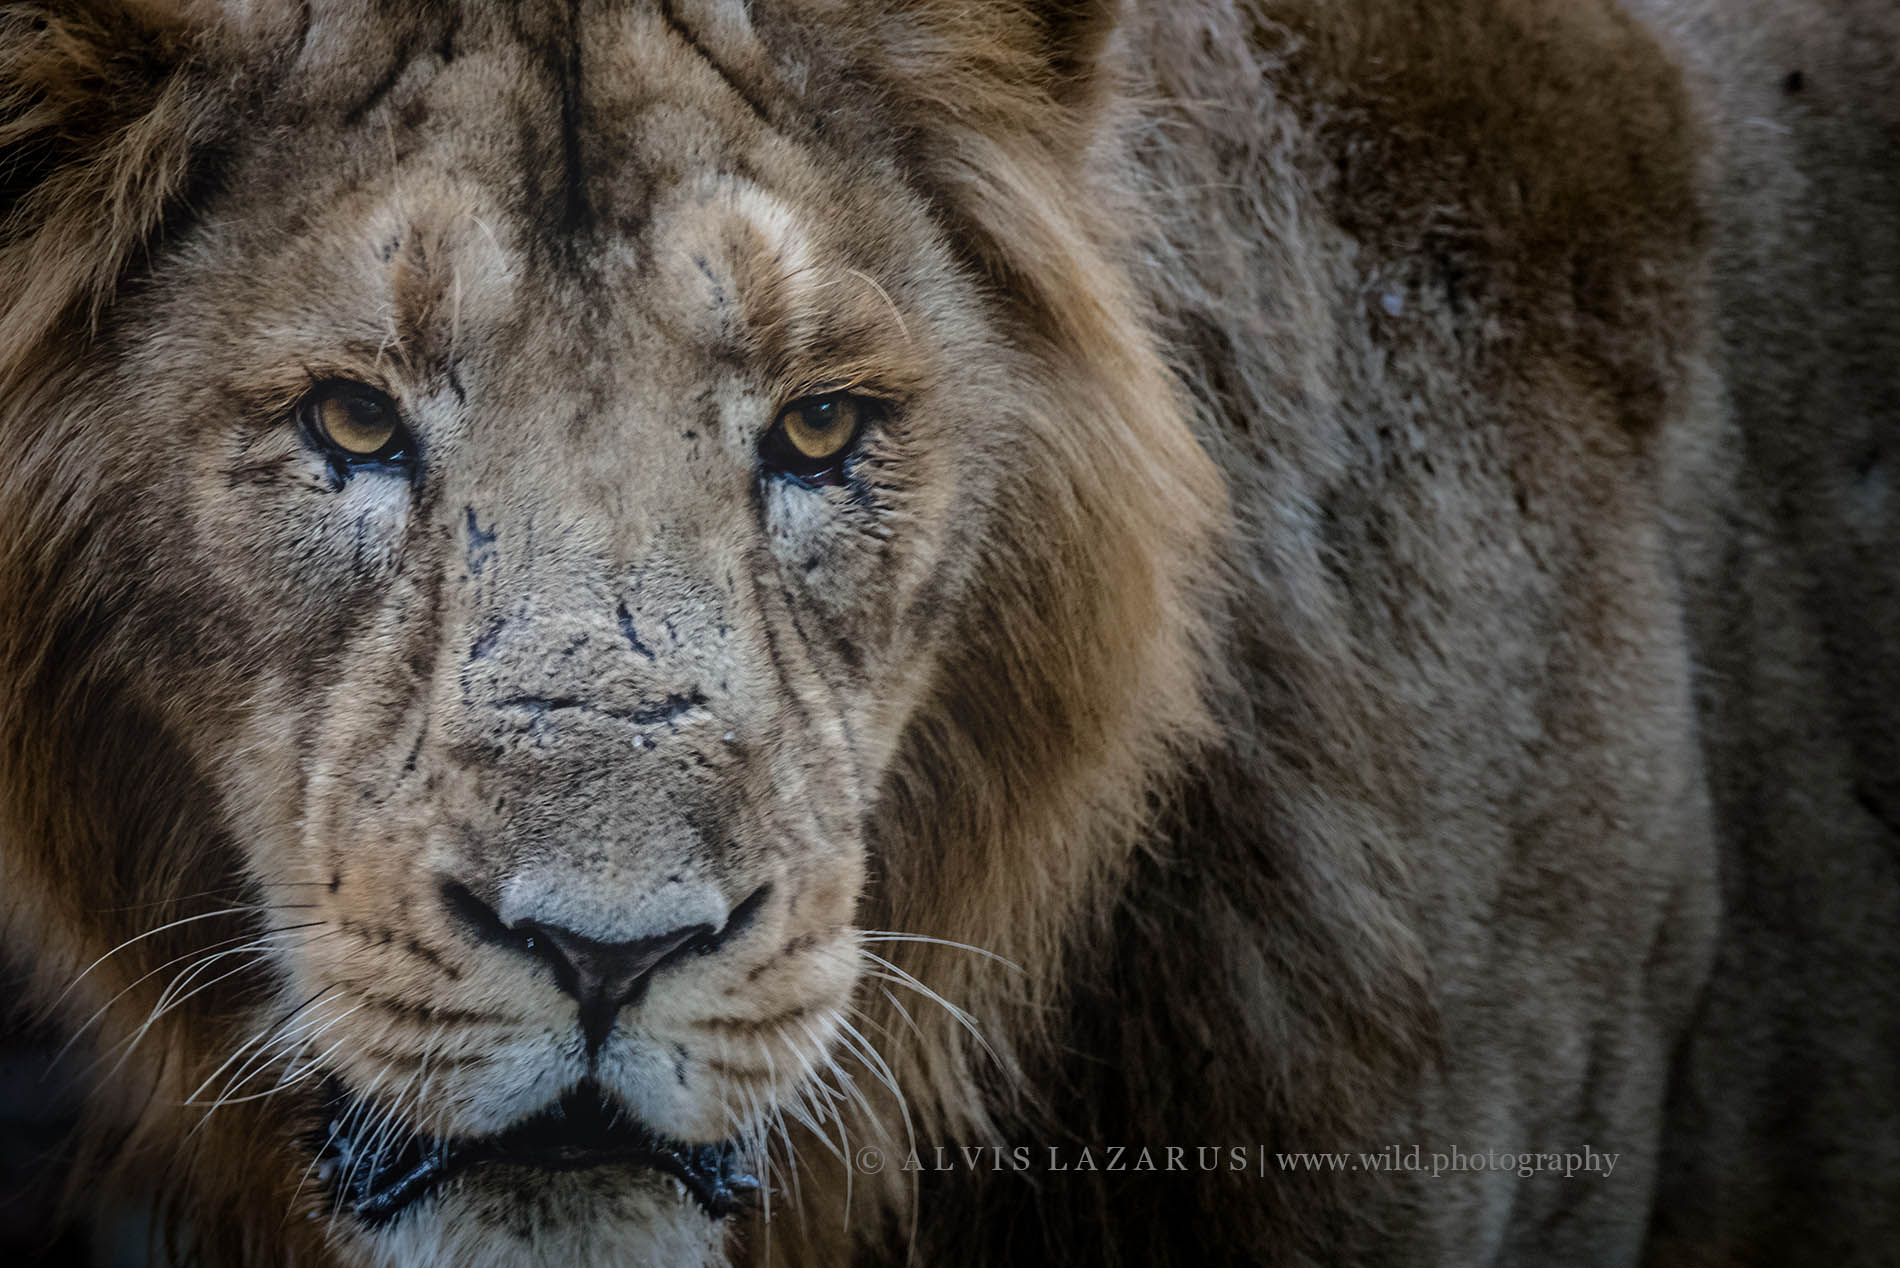 Wild Male Lion Portrait from Sasan GIR Gujarat